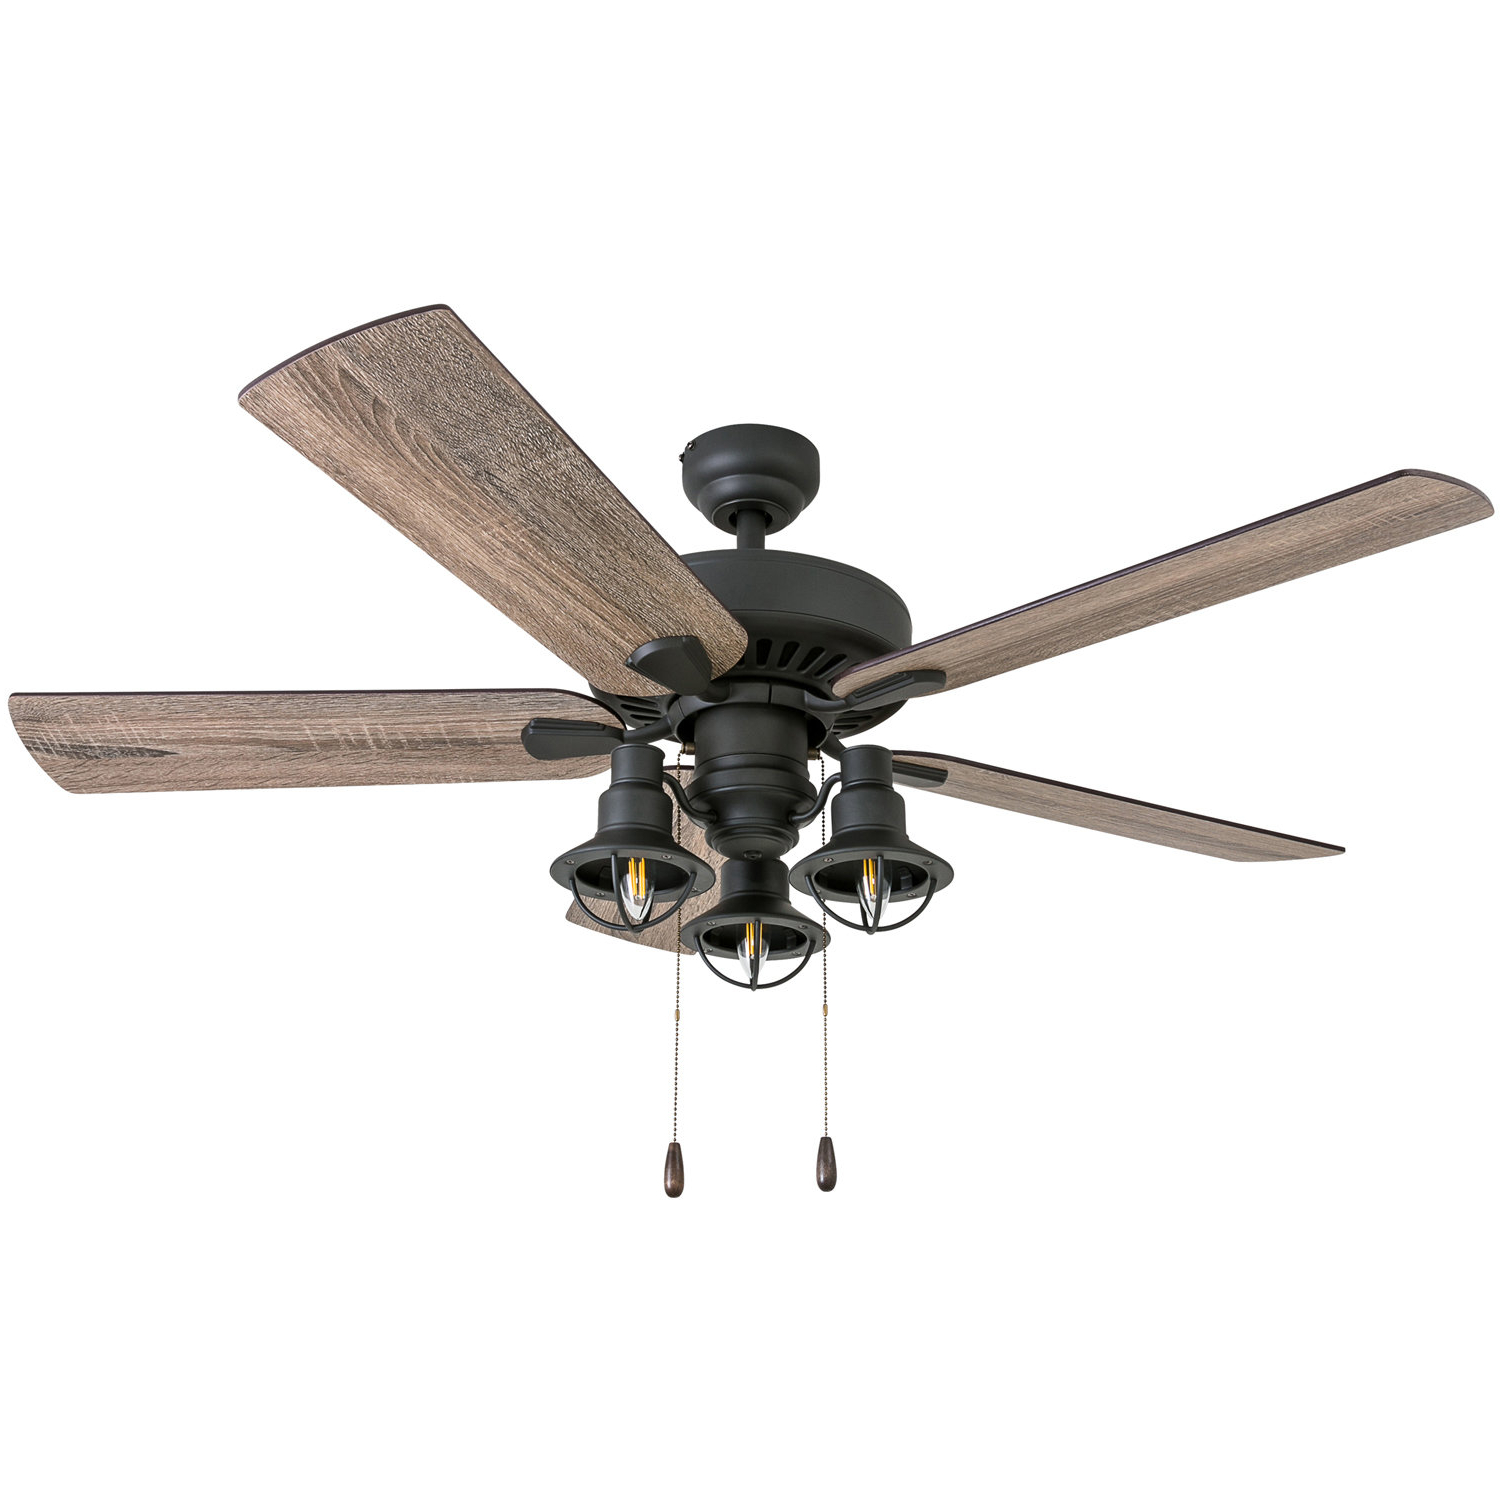 "Well Liked 52"" Ravello 5 Blade Led Ceiling Fan, Light Kit Included Inside Crestfield 5 Blade Led Ceiling Fans (View 19 of 20)"